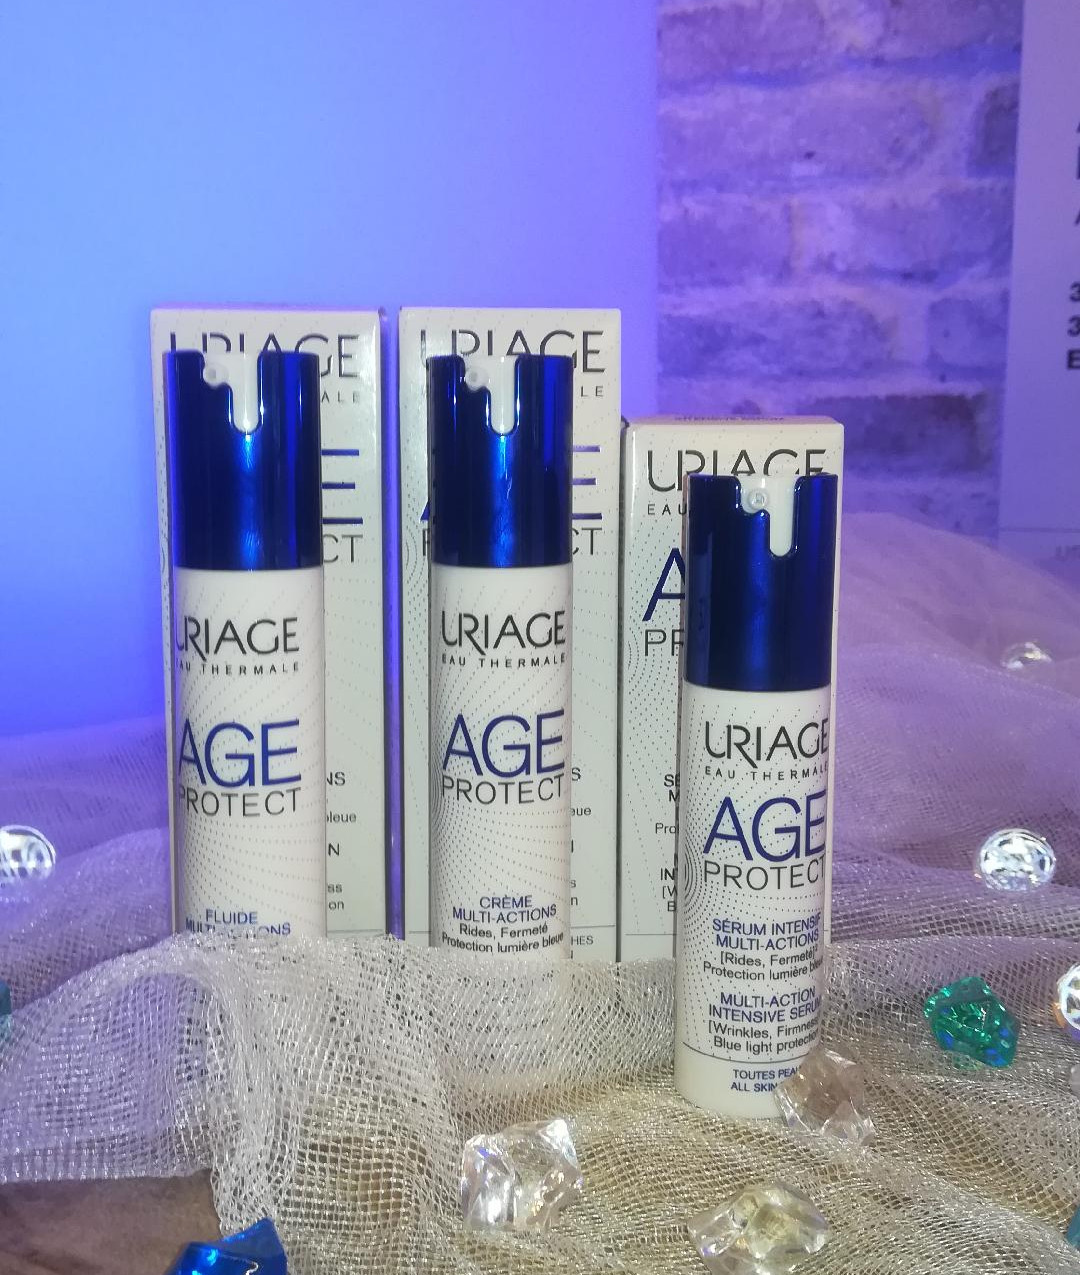 uriage_age_protect_2